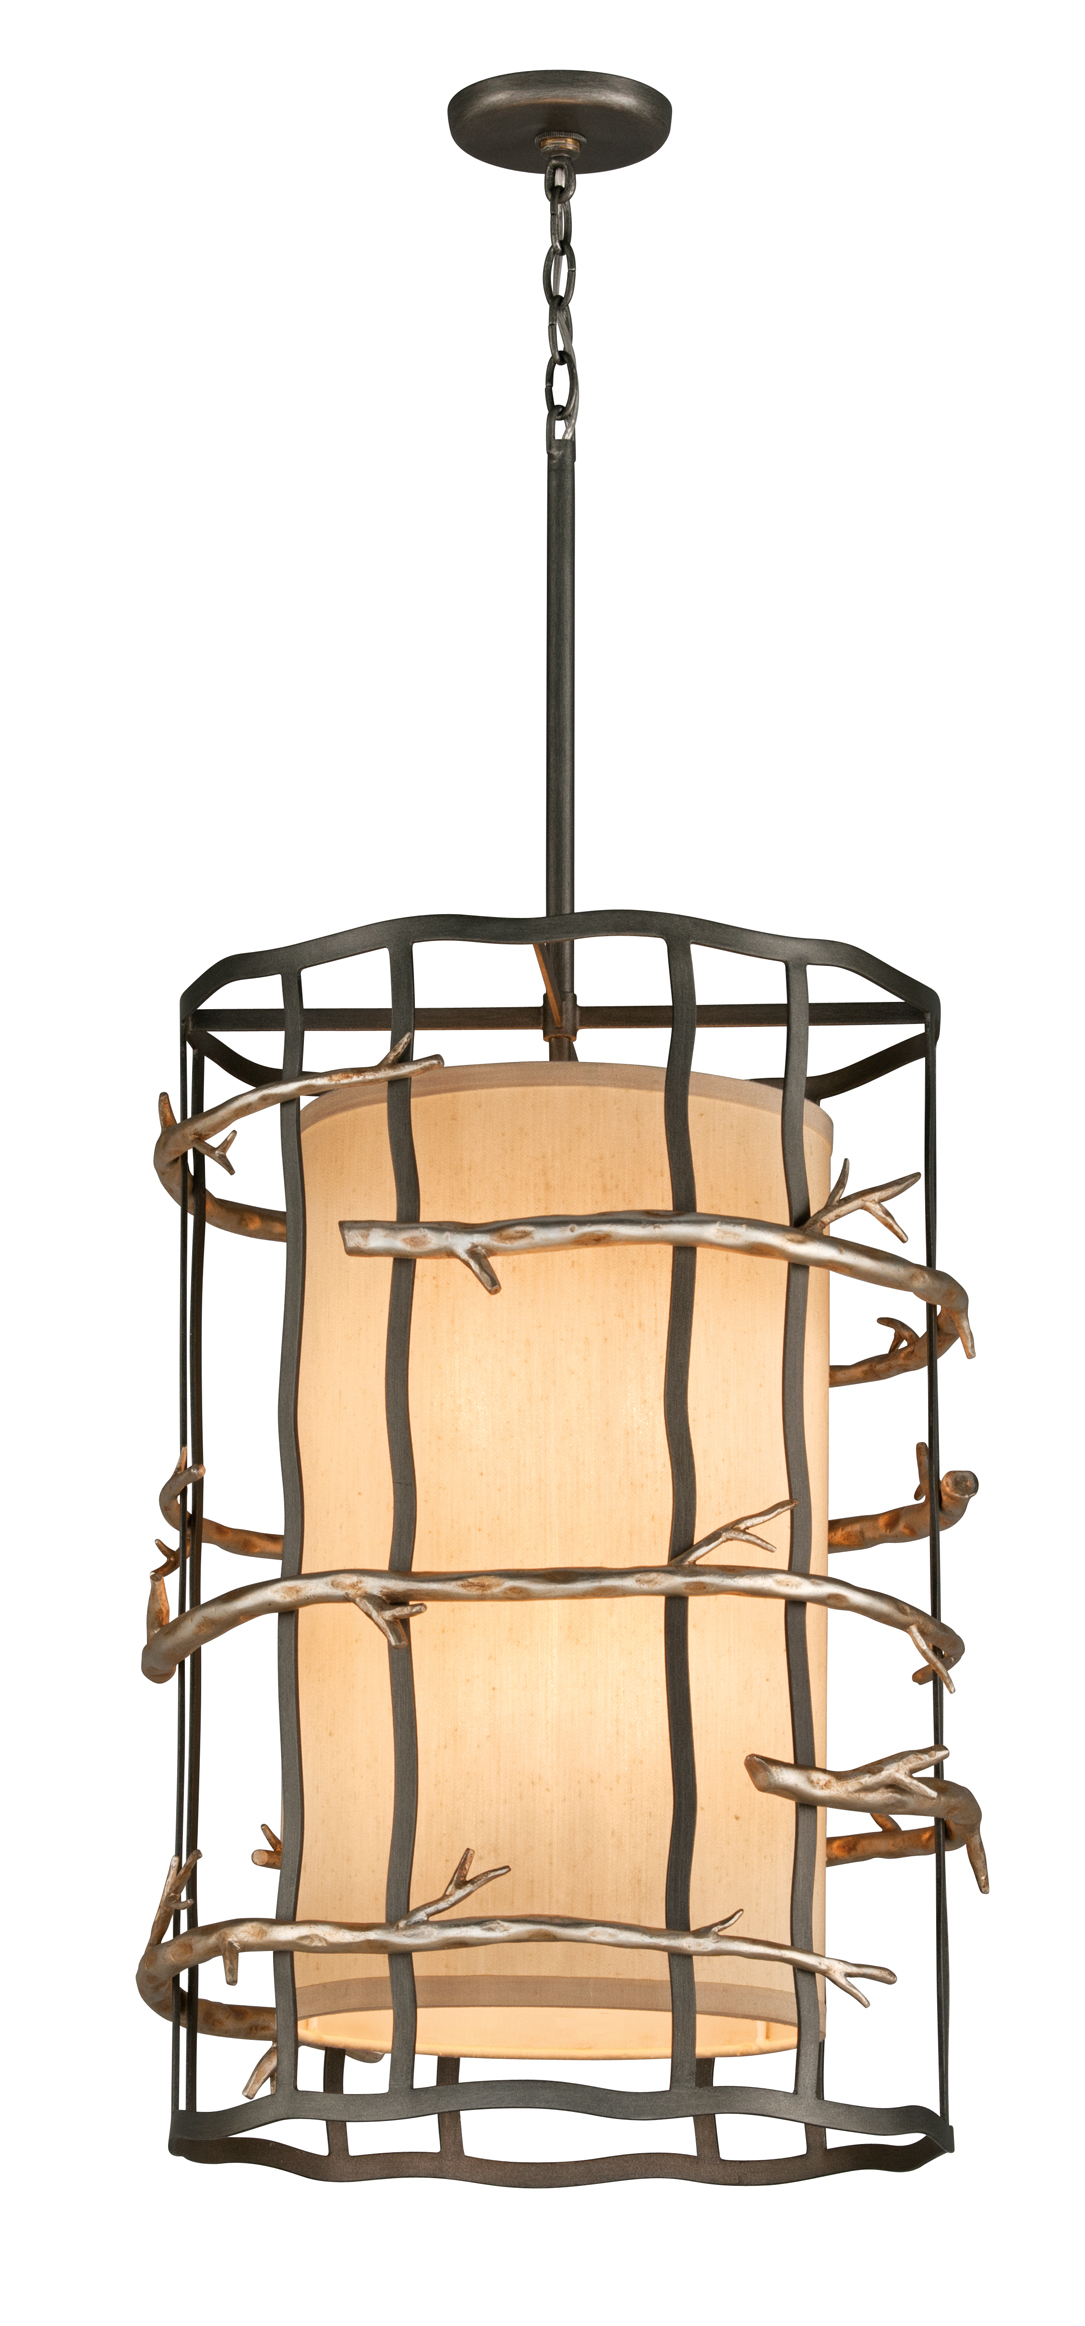 troy lighting f2884 adirondack 6 light pendant in graphite and